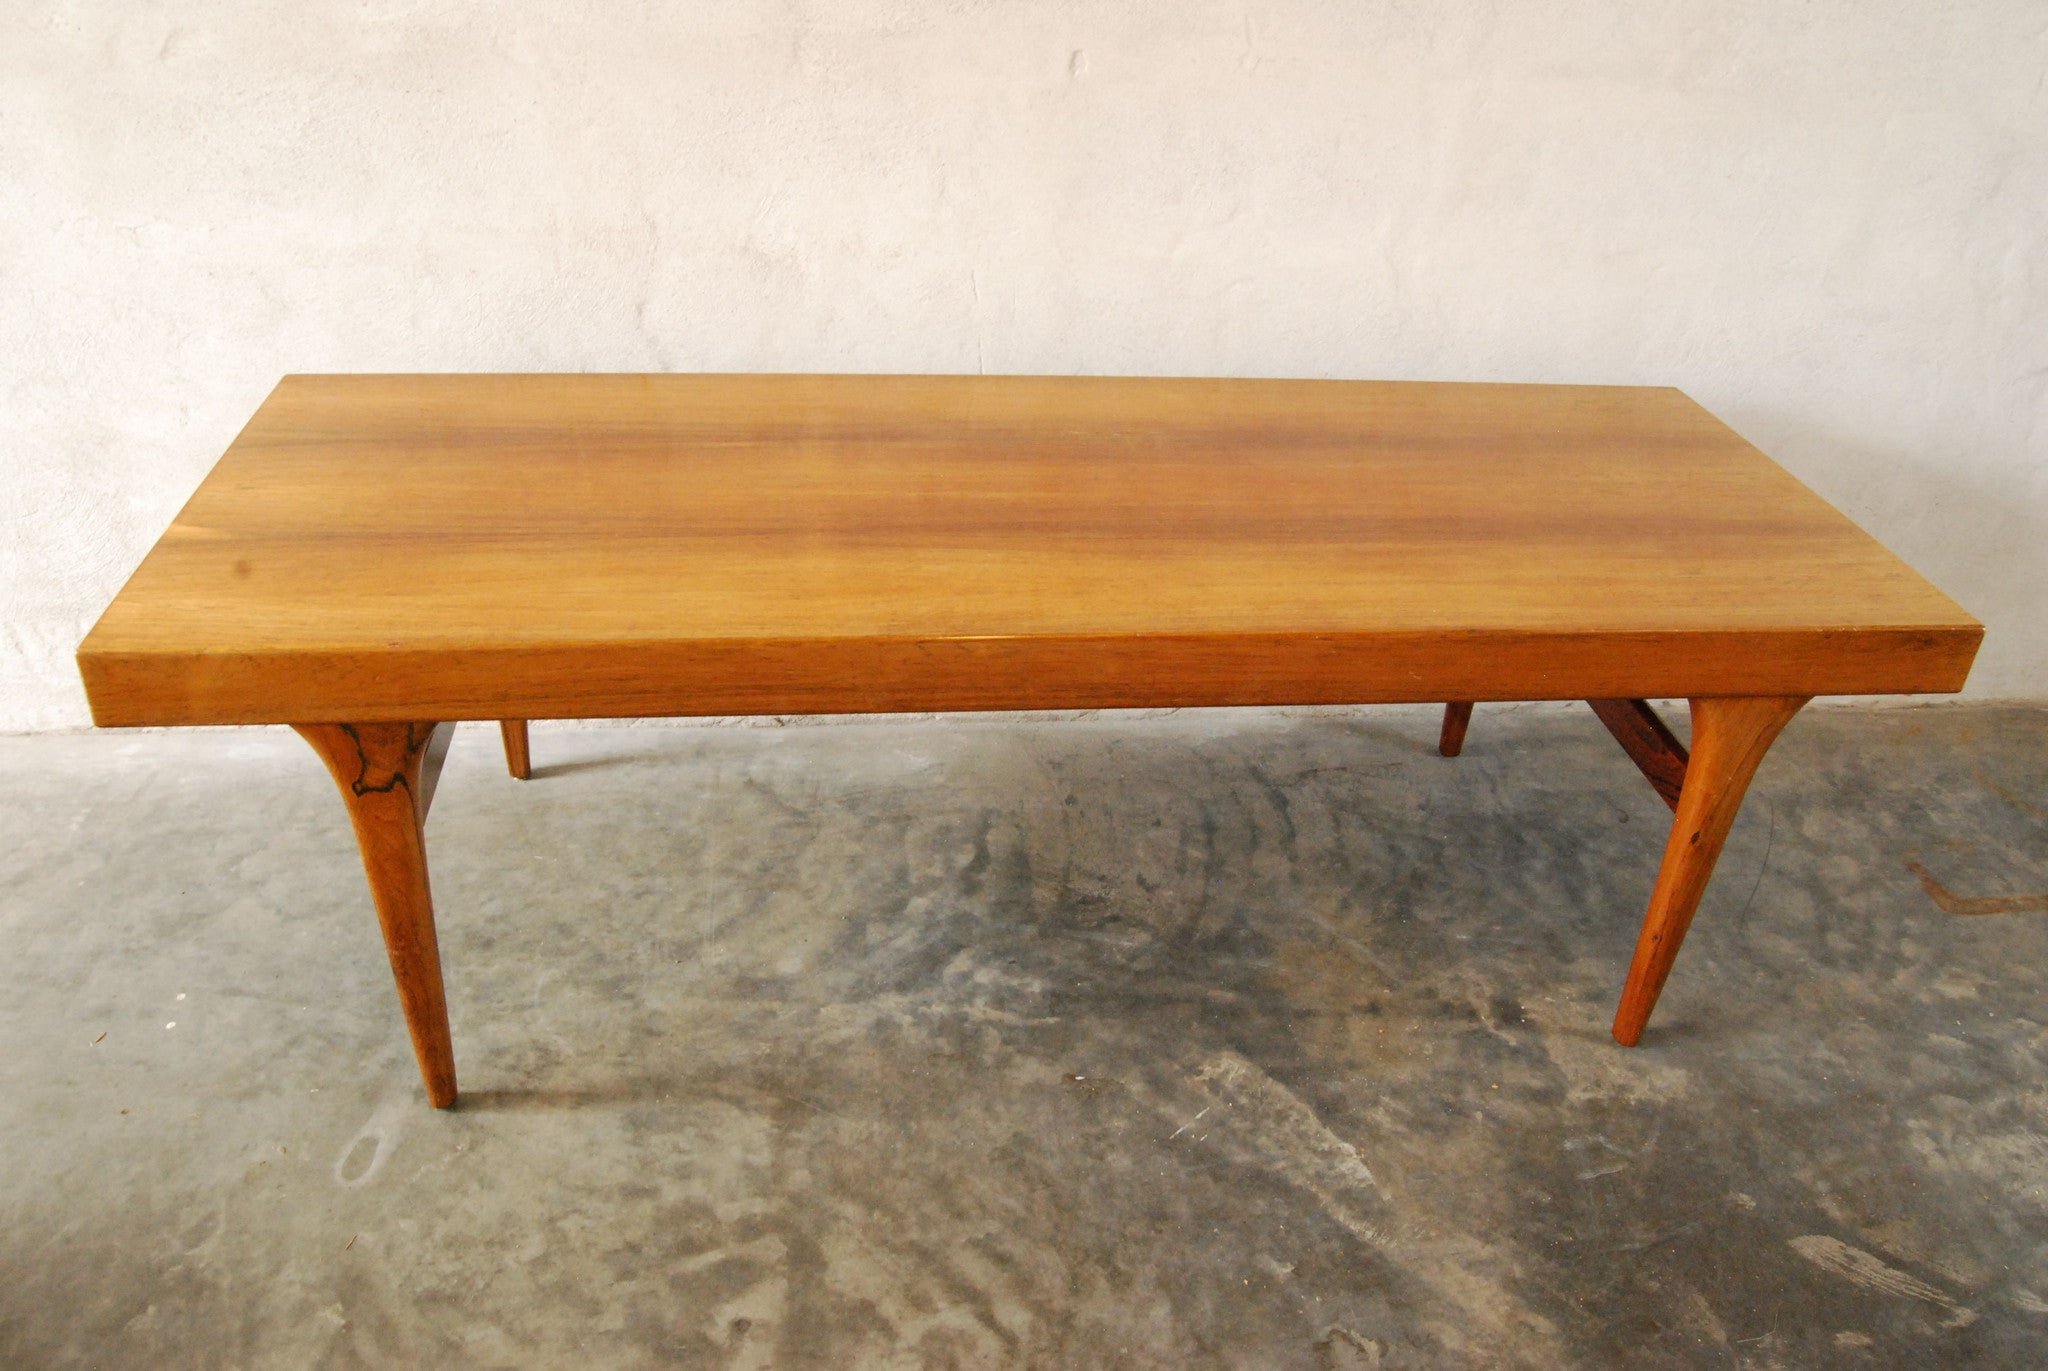 Chase & Sorensen Rosewood coffee table by Johannes Andersen